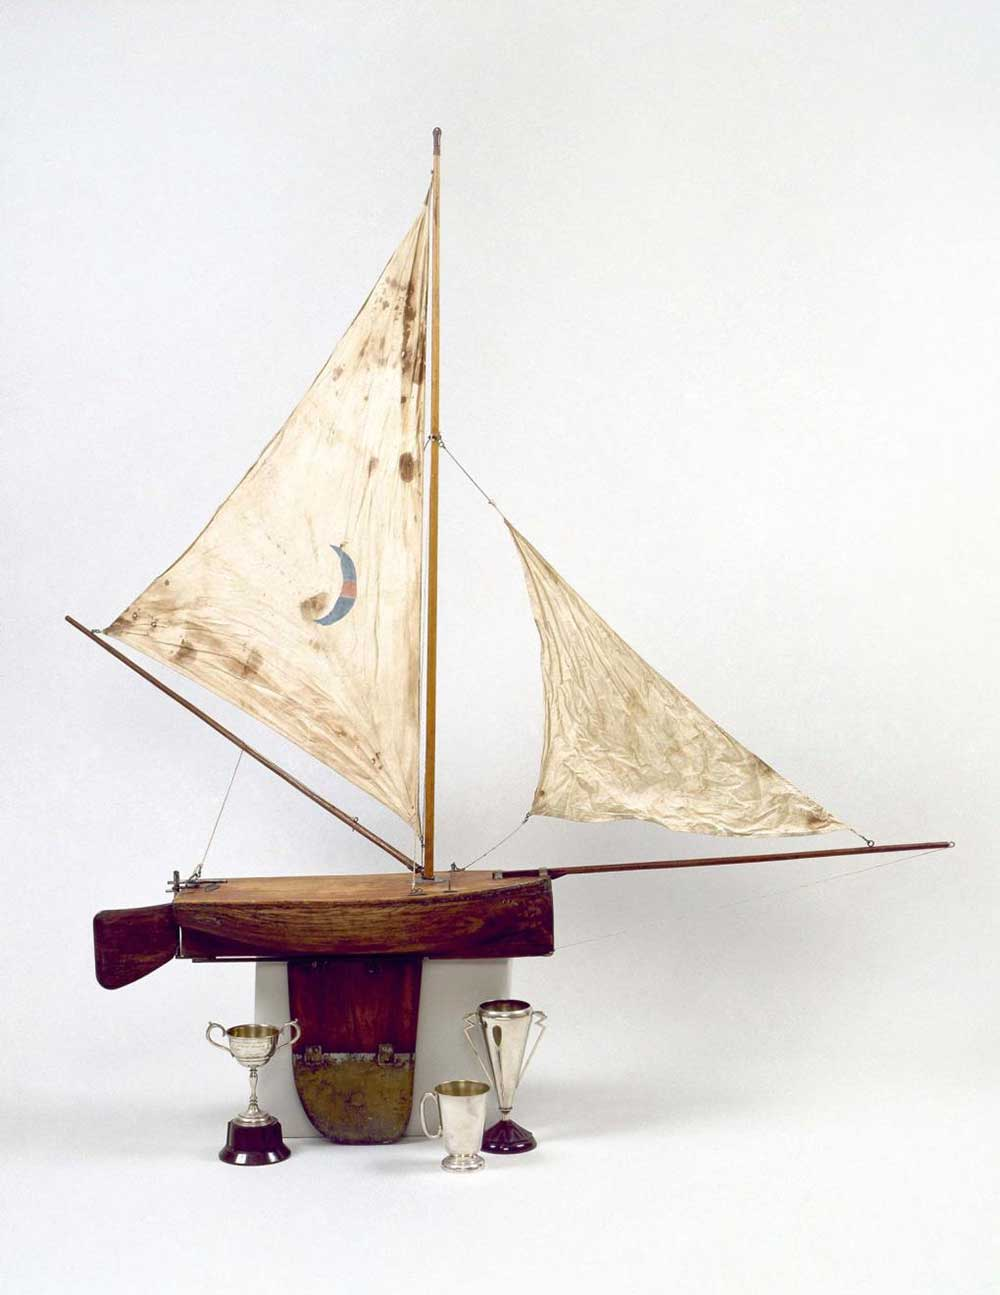 2-foot cedar model Lily raced in the winter on Harbour waters off Balmain by skiff sailors of the Sydney Flying Squadron (SFS) in the 1920s. Competition, and punting, was fierce. ANMM Collection Gift from Ron Mobberley